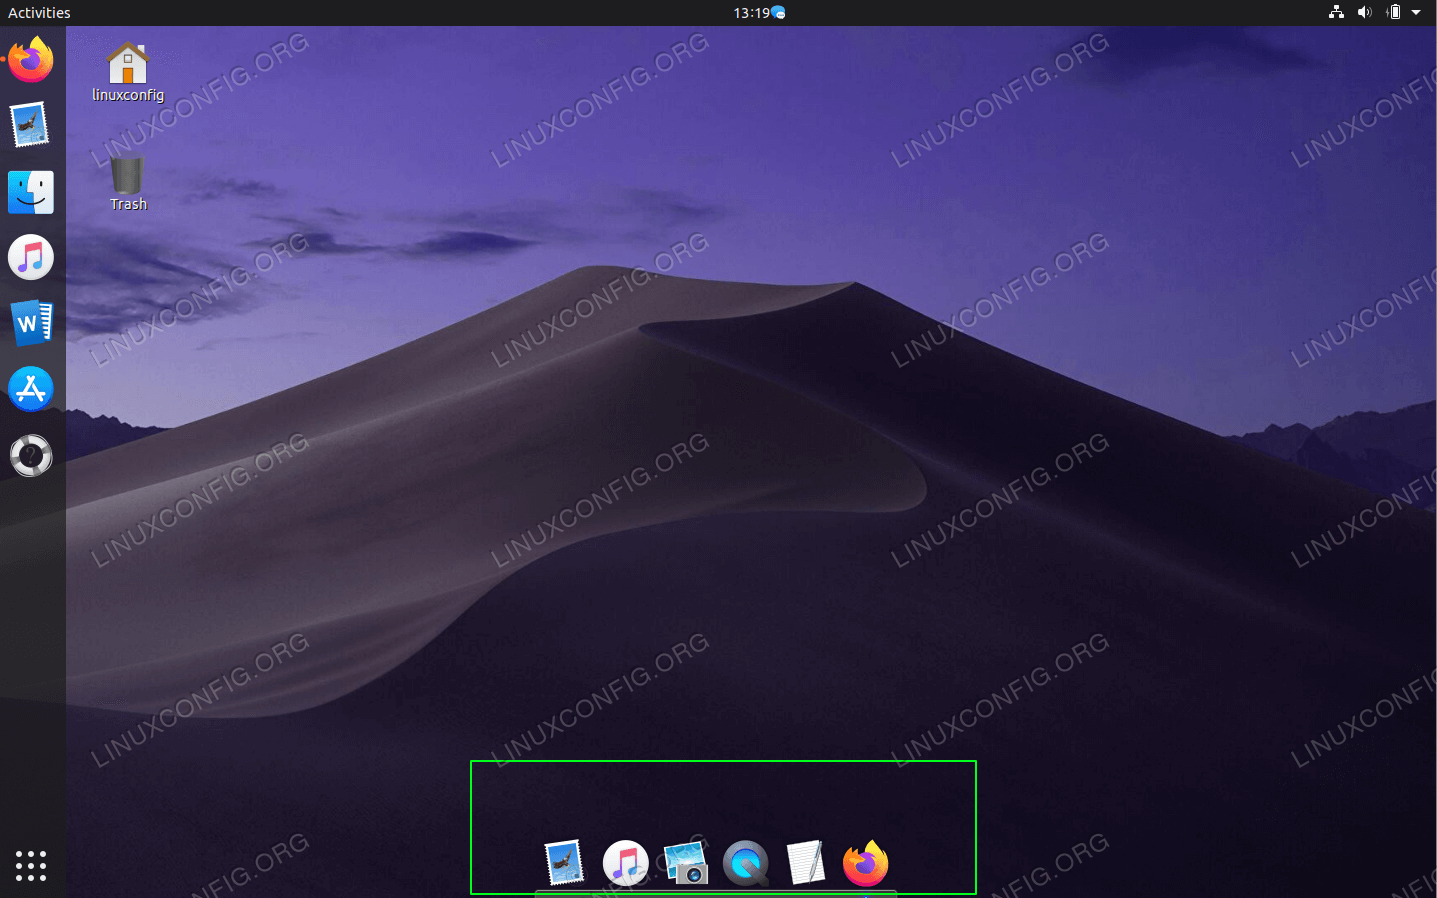 At this point you should see the macOS panel at the bottom of your desktop.